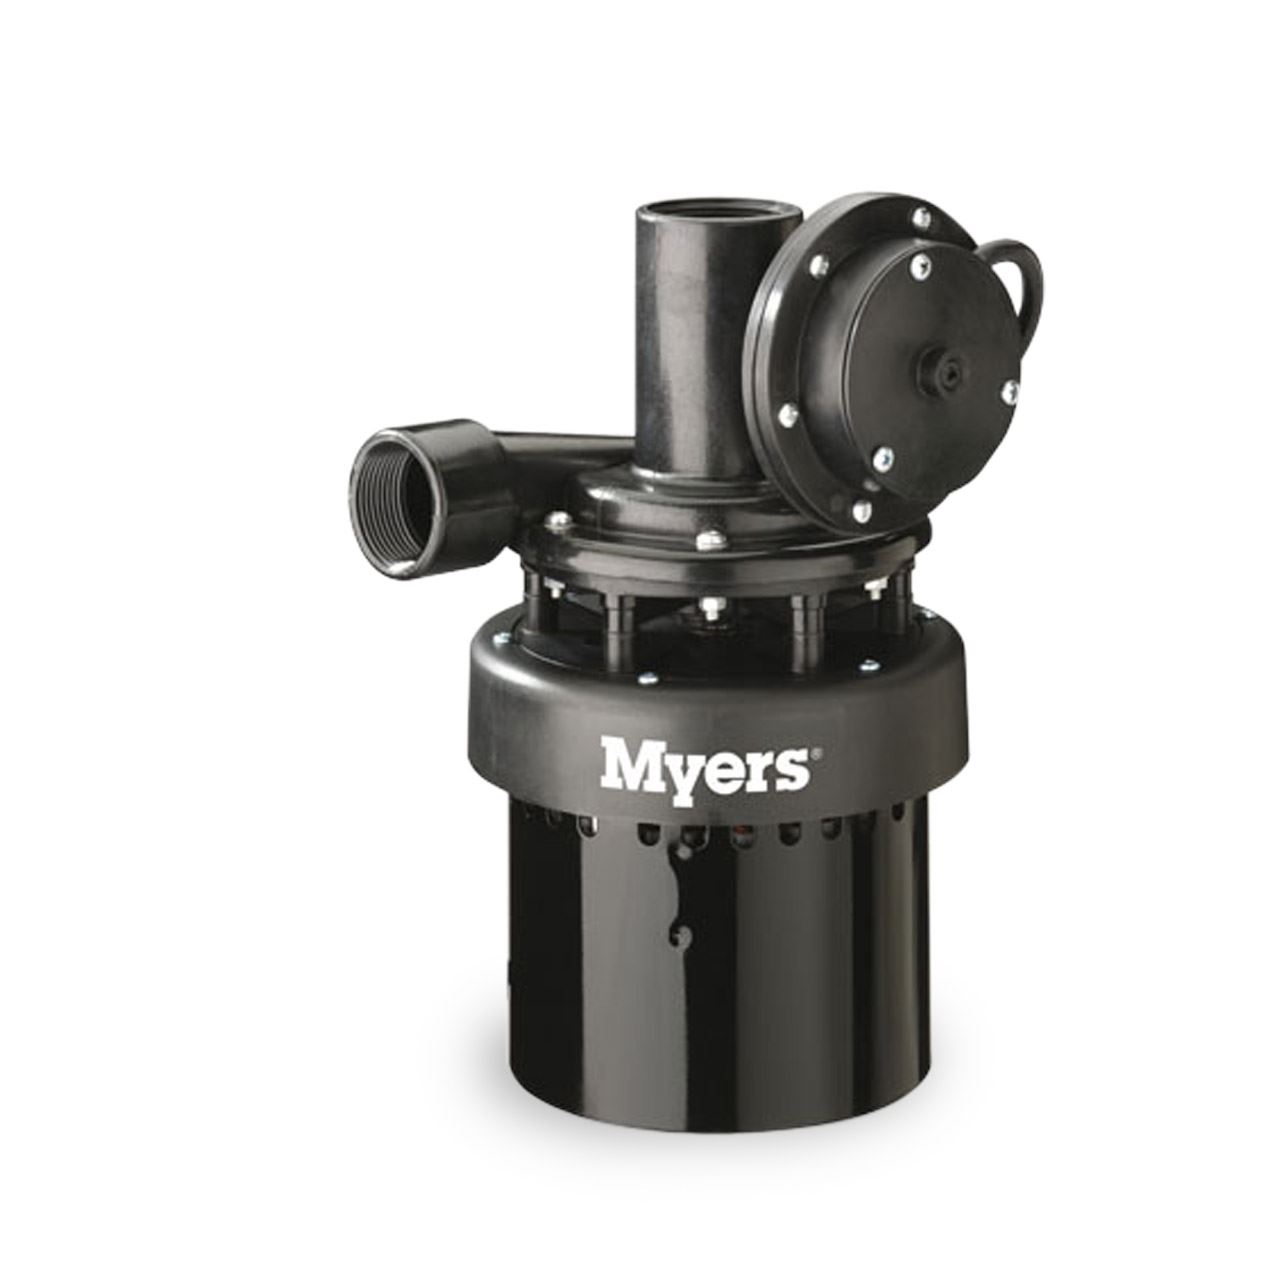 Myers MUSP125 Utility Sink Pump 0.33 HP 115V Myers MUSP125, sink pump, utility sink pump, 27546A000, under sink pump, laundry pump, utility laundry pump, washtub pump